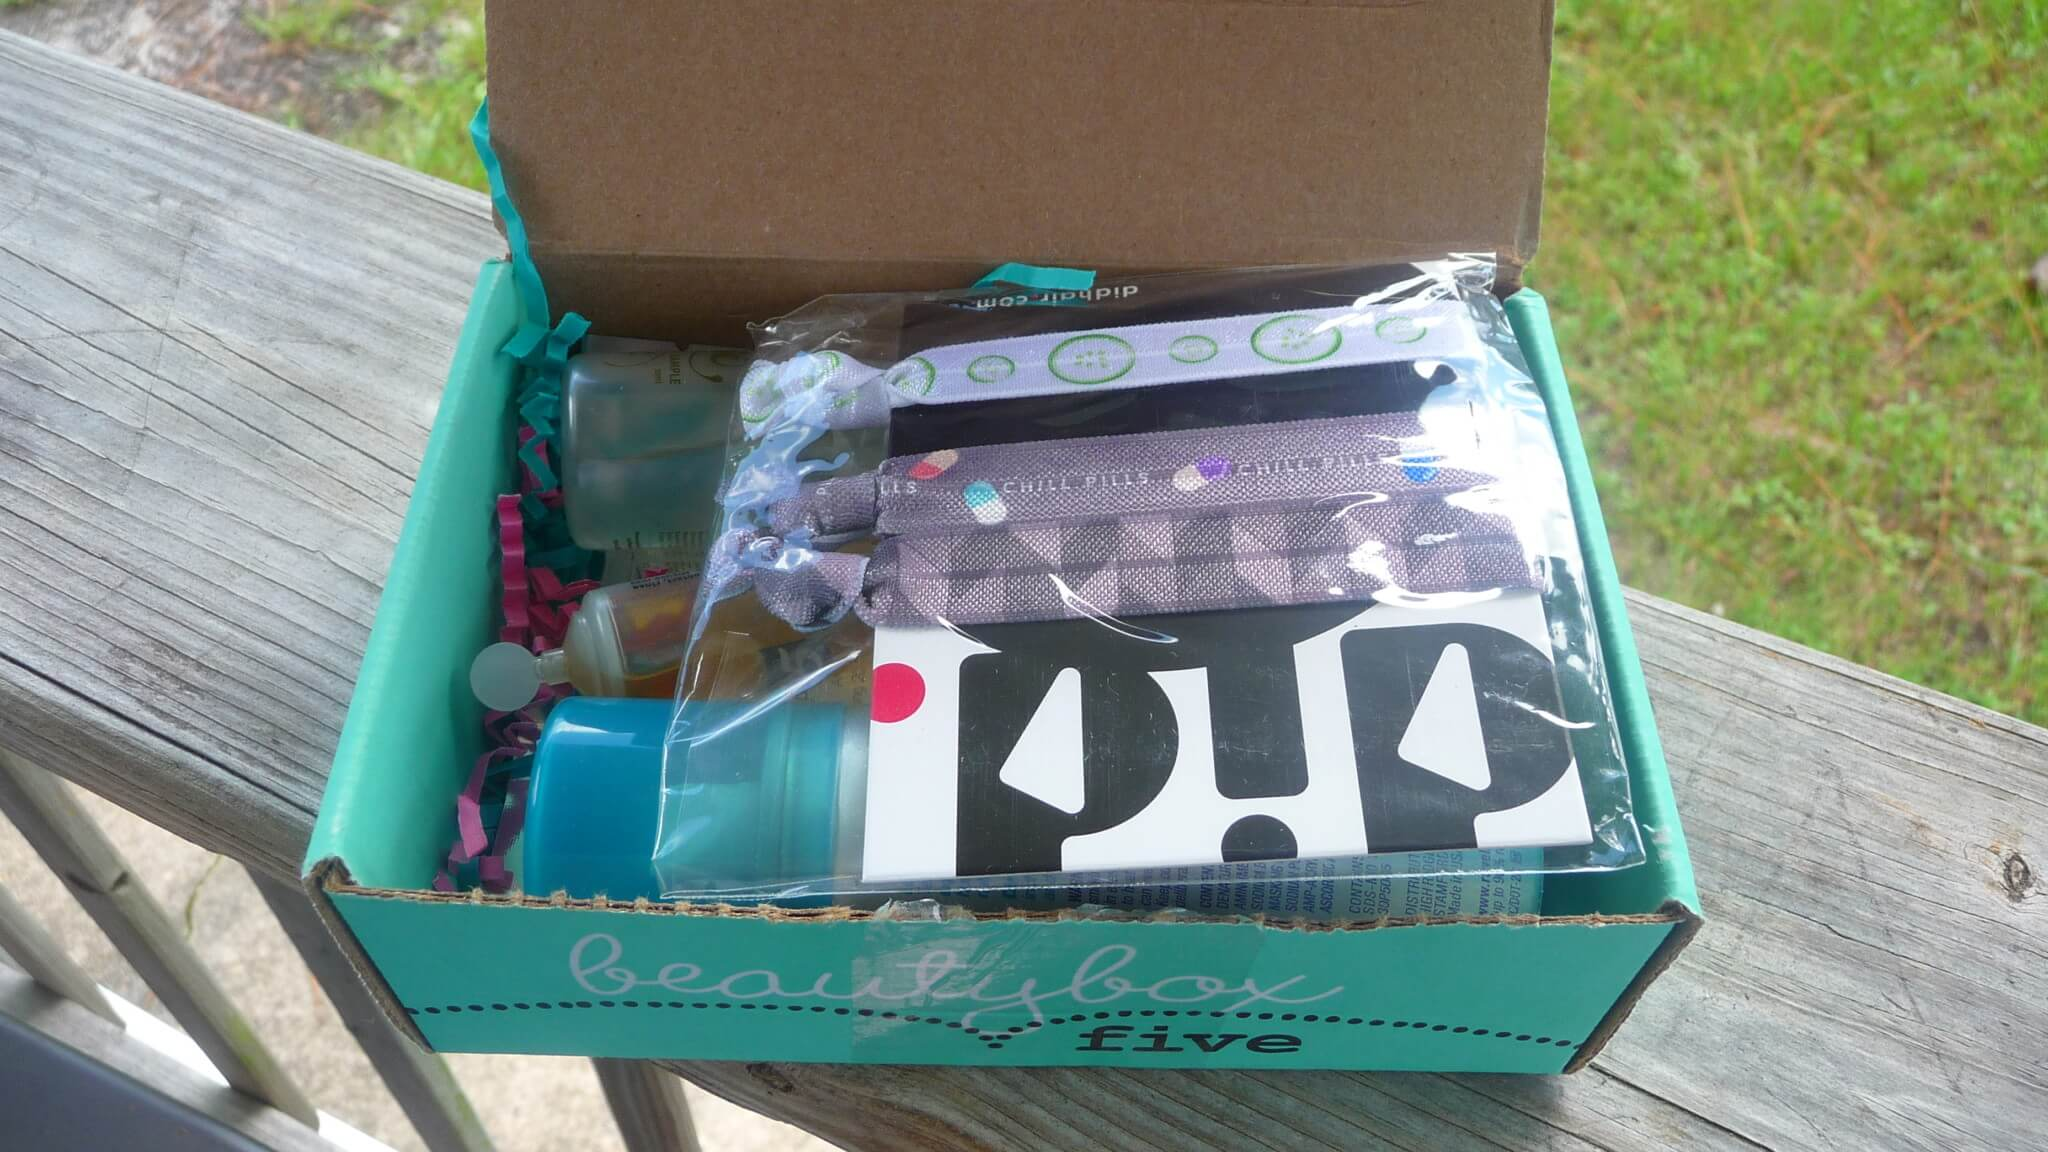 Beauty Box 5 August 2016 Subscription Box Review & Coupon – Pampering in Progress